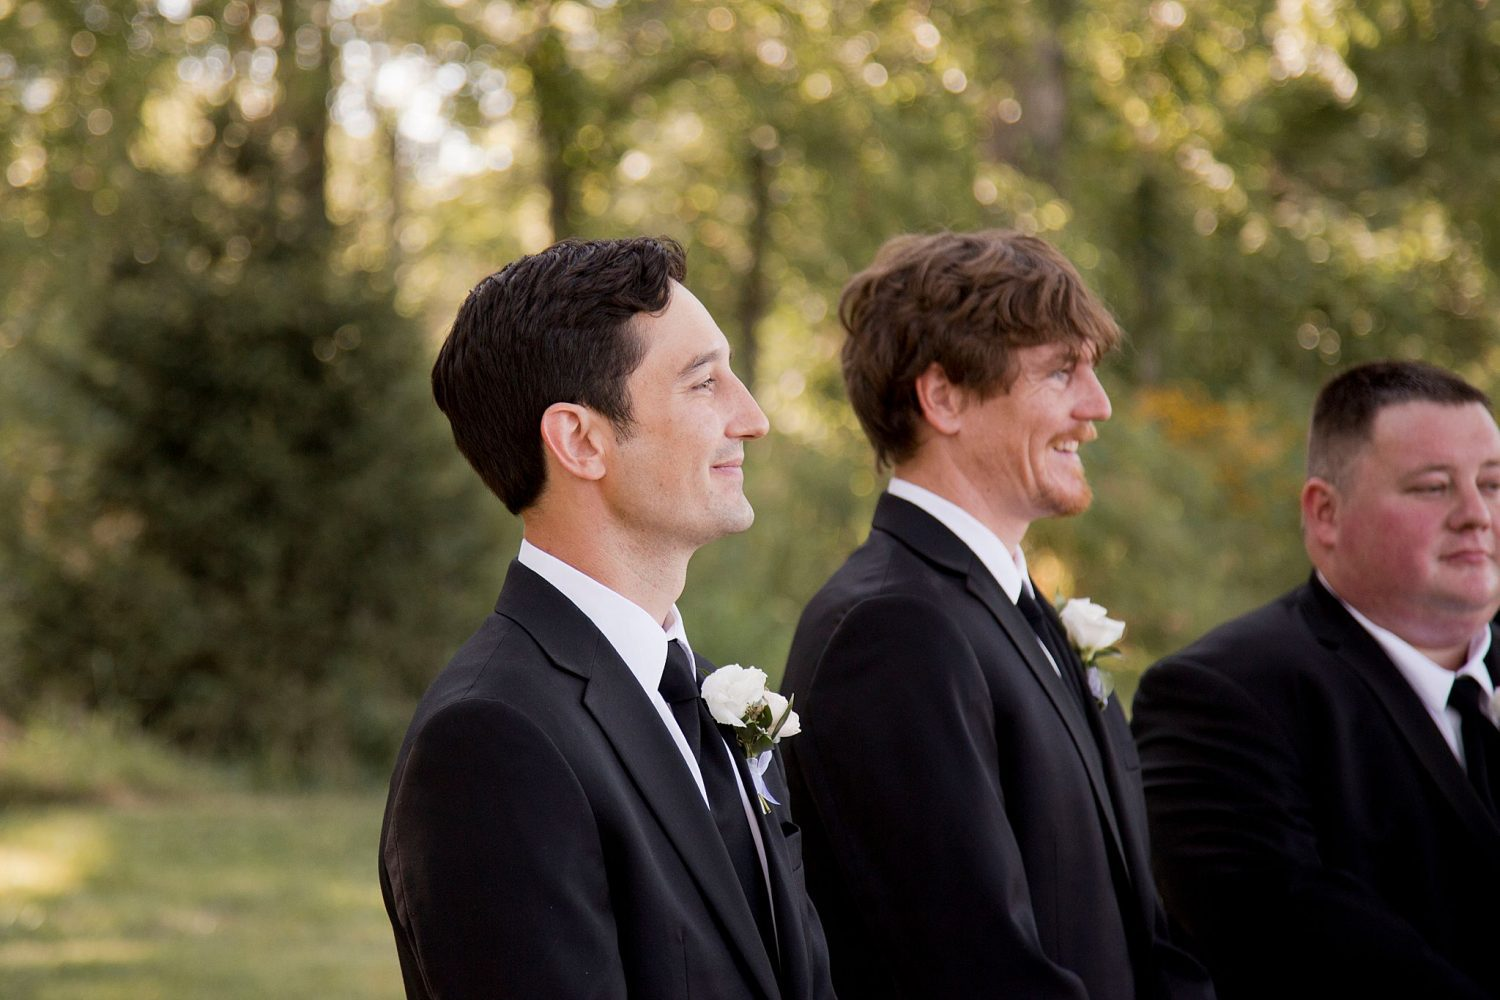 The groom and his brother are seen smiling as they watch his bride walk down the aisle.